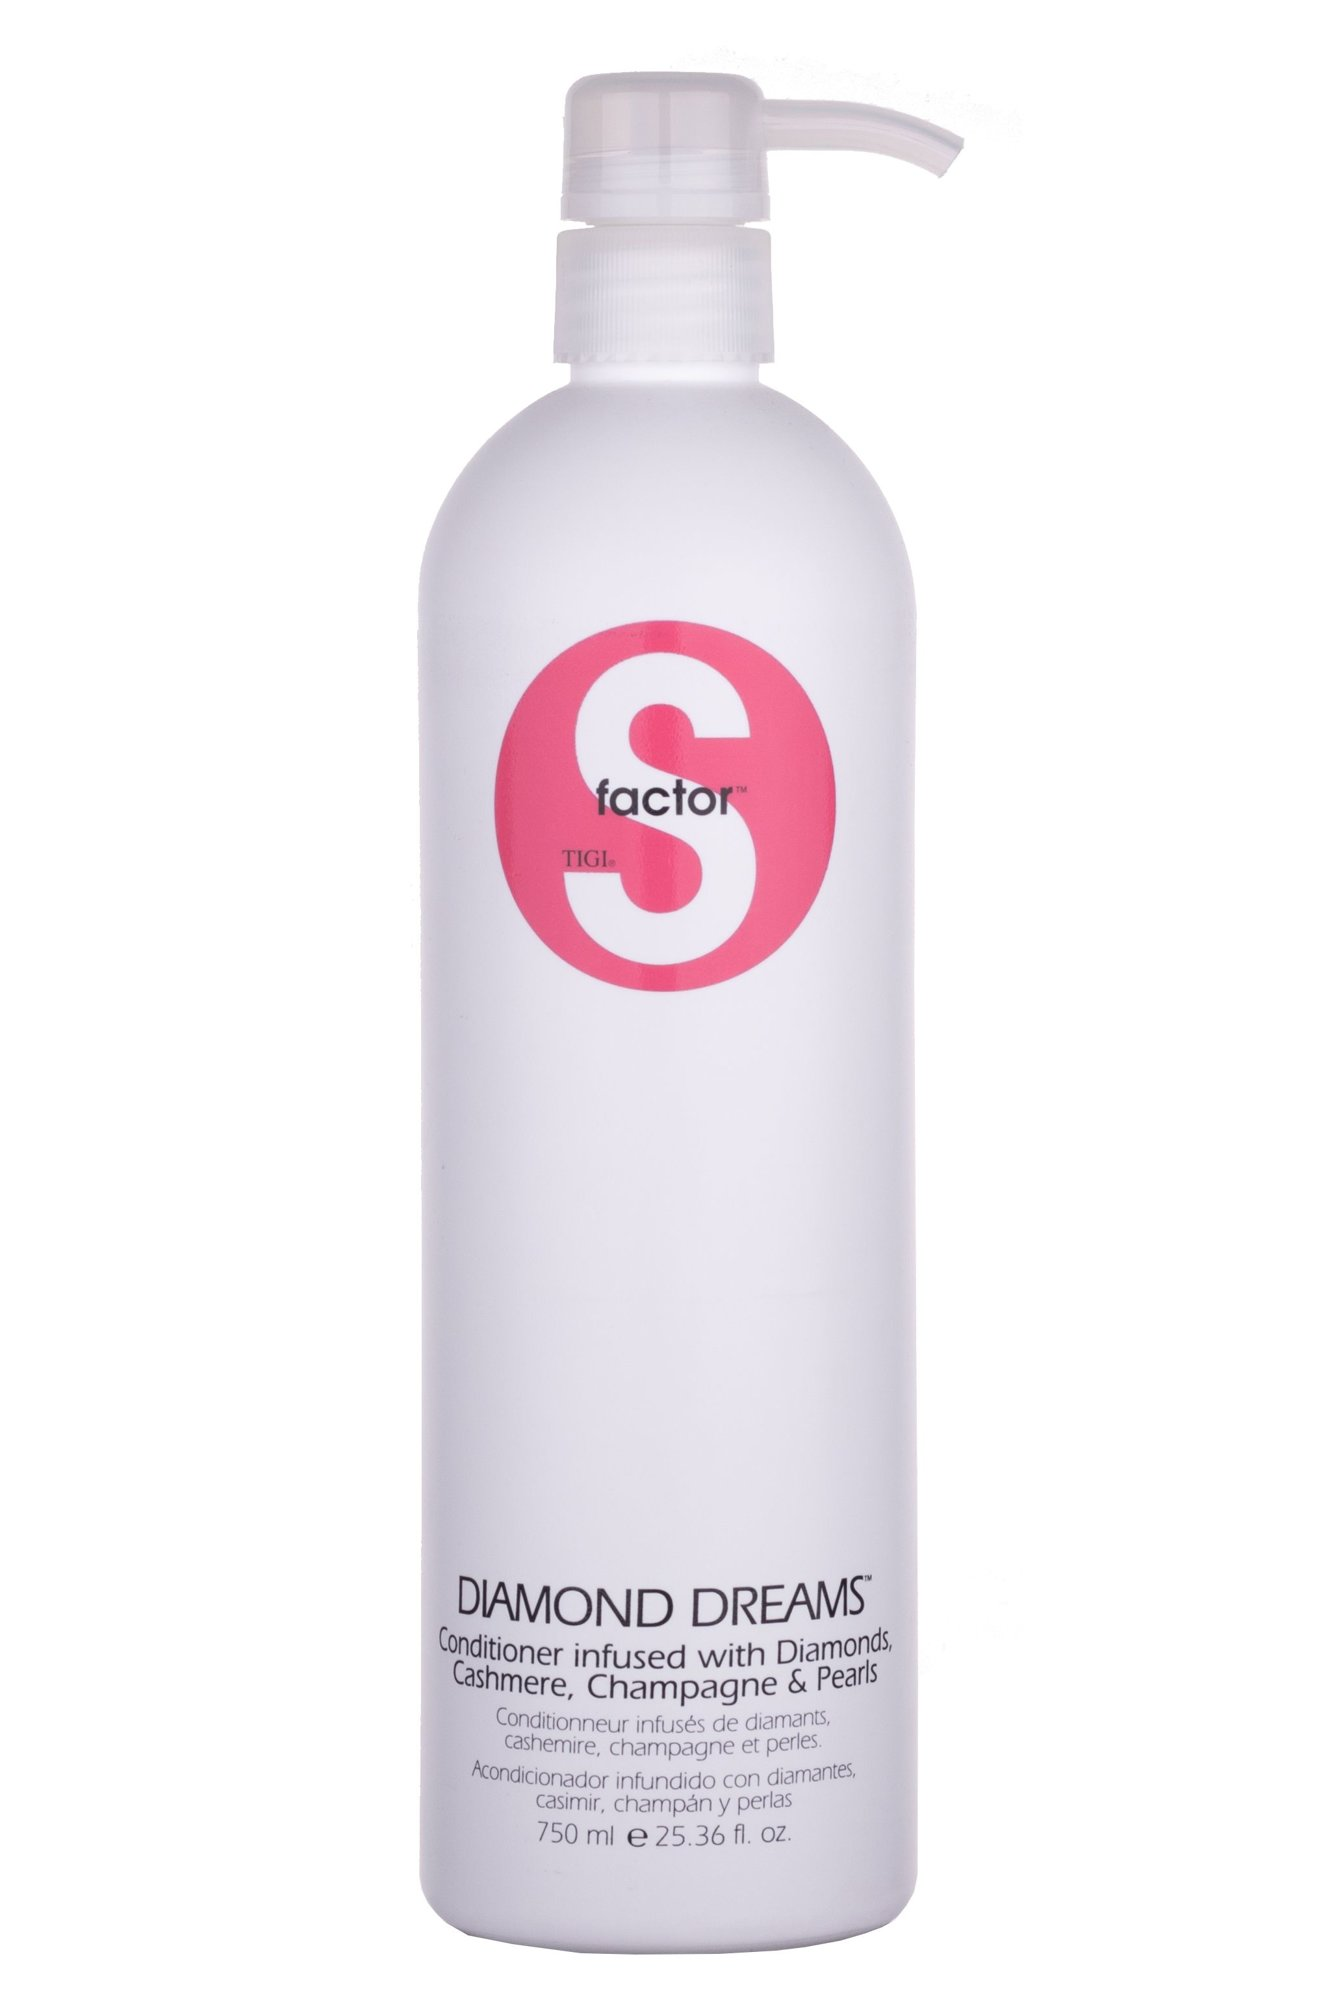 Tigi S Factor Diamond Dreams Conditioner 750ml